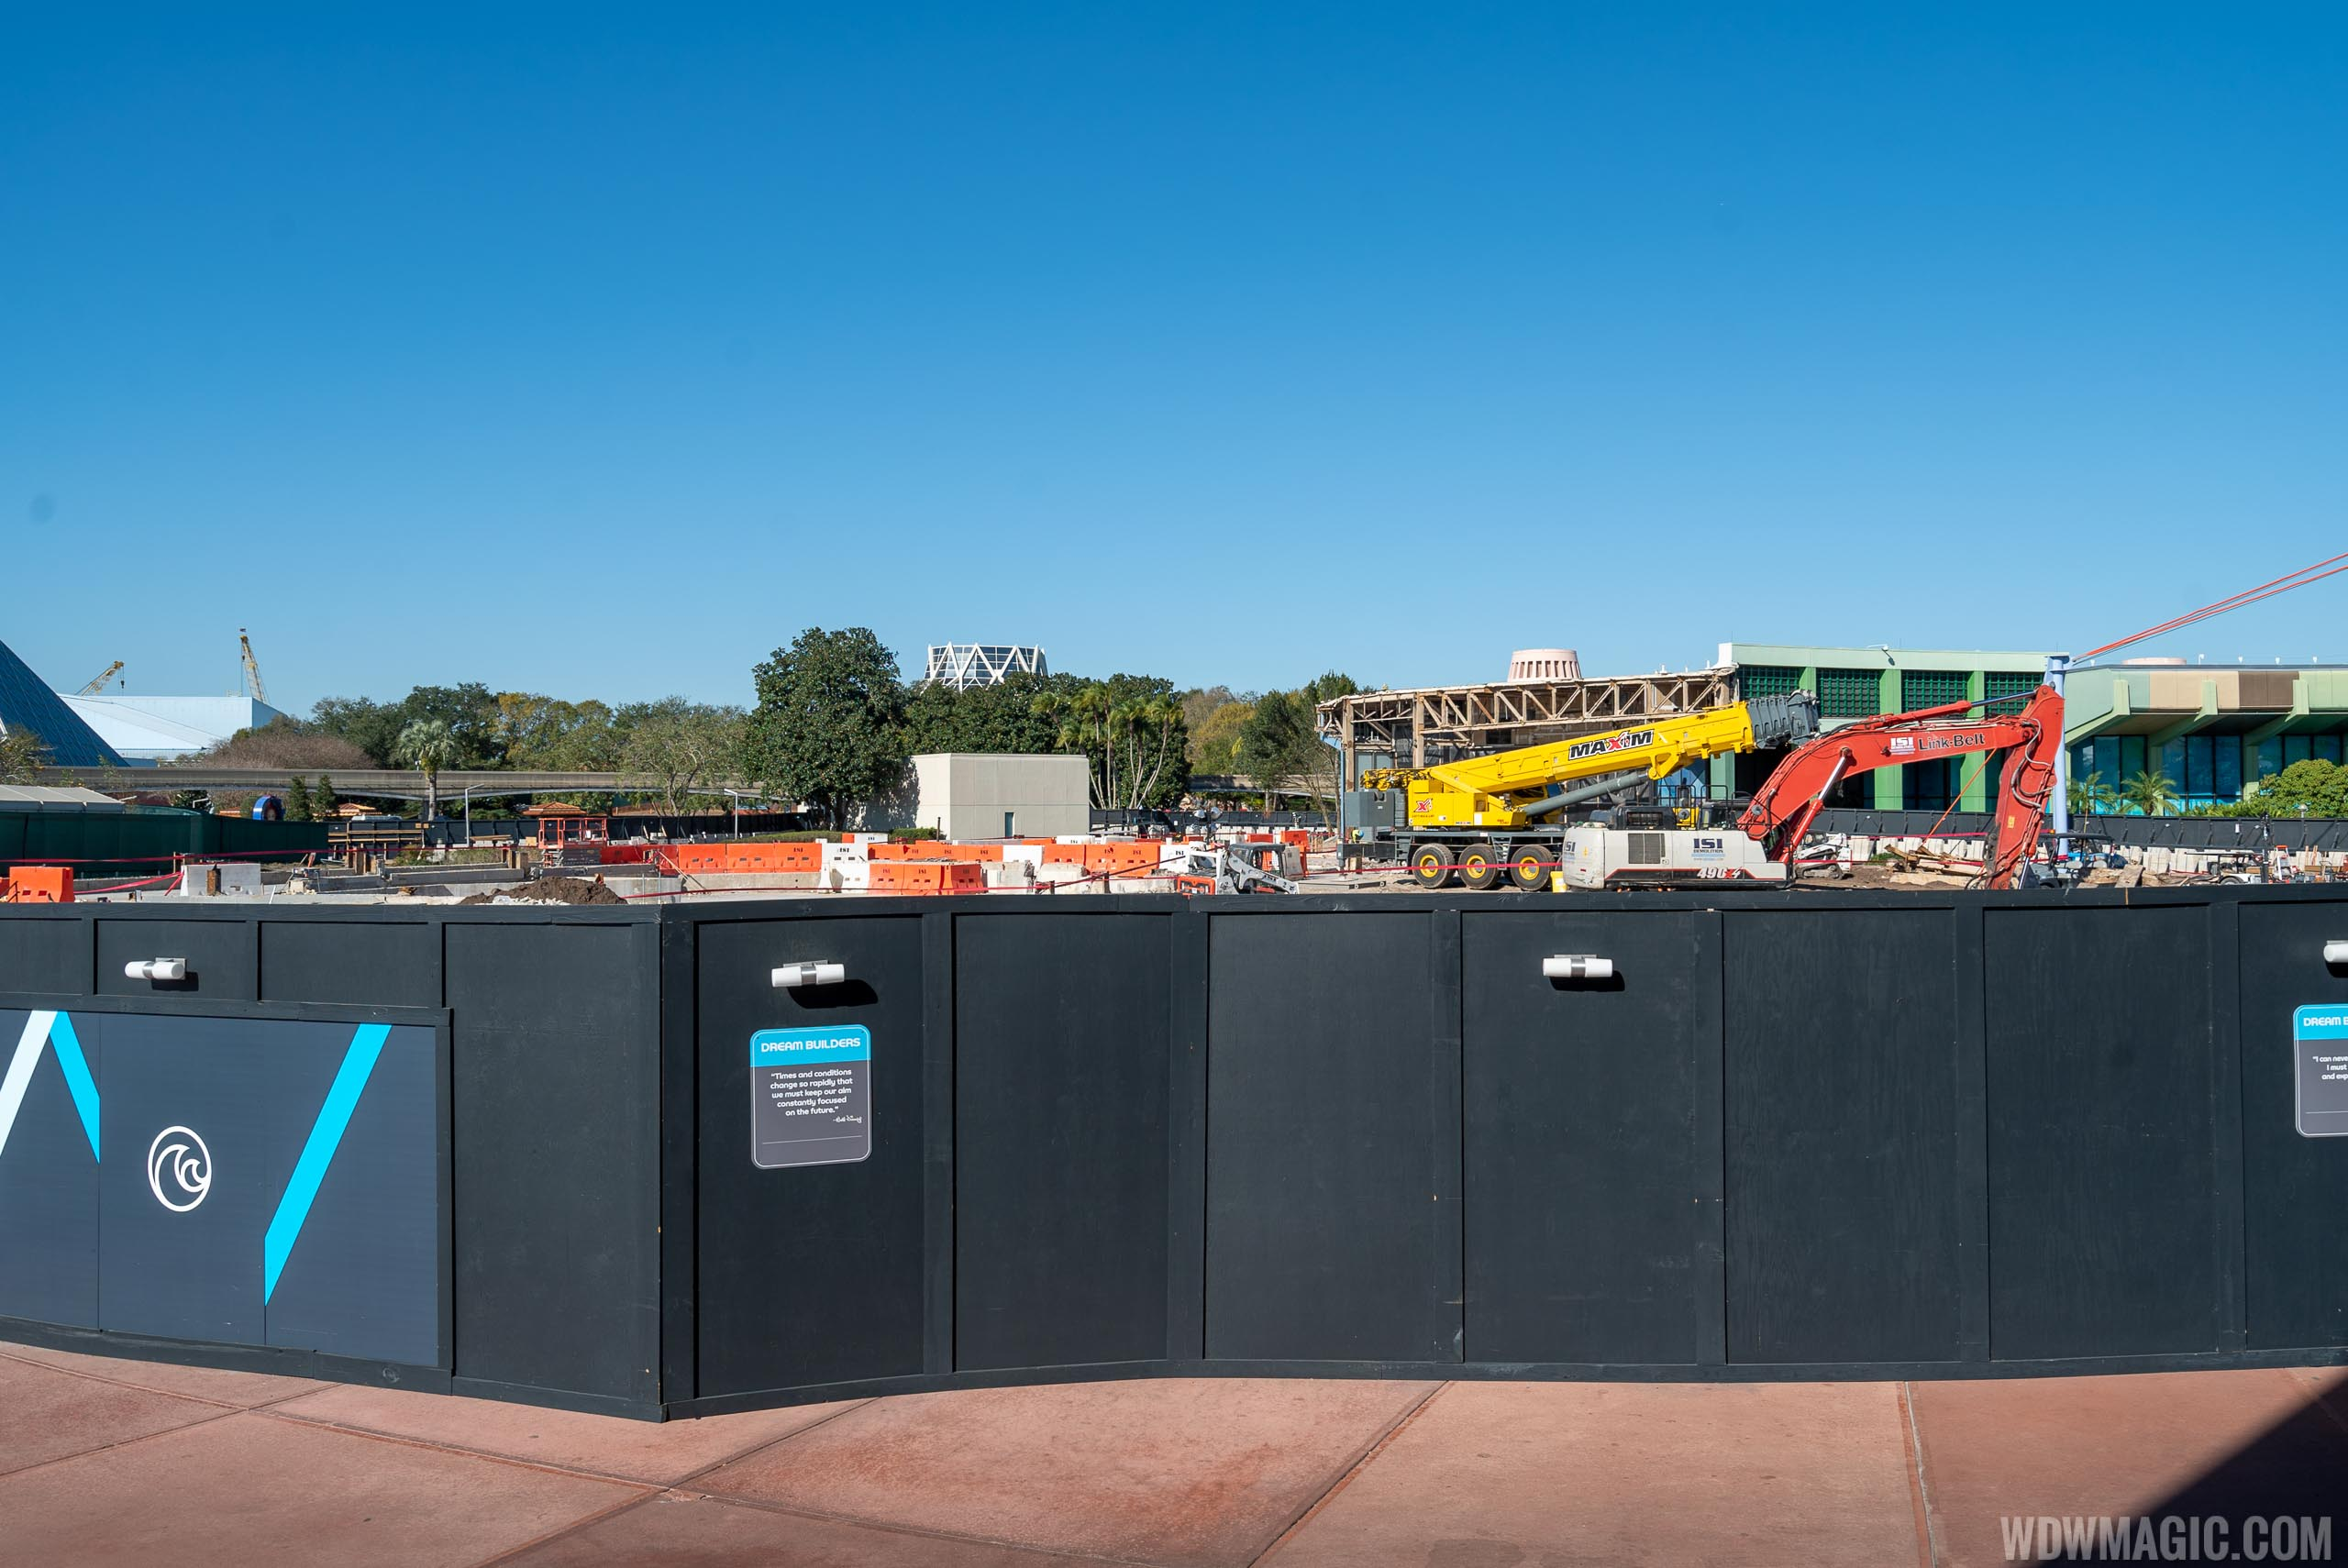 Epcot Future World West Demolition and Construction Walls - January 21 2020